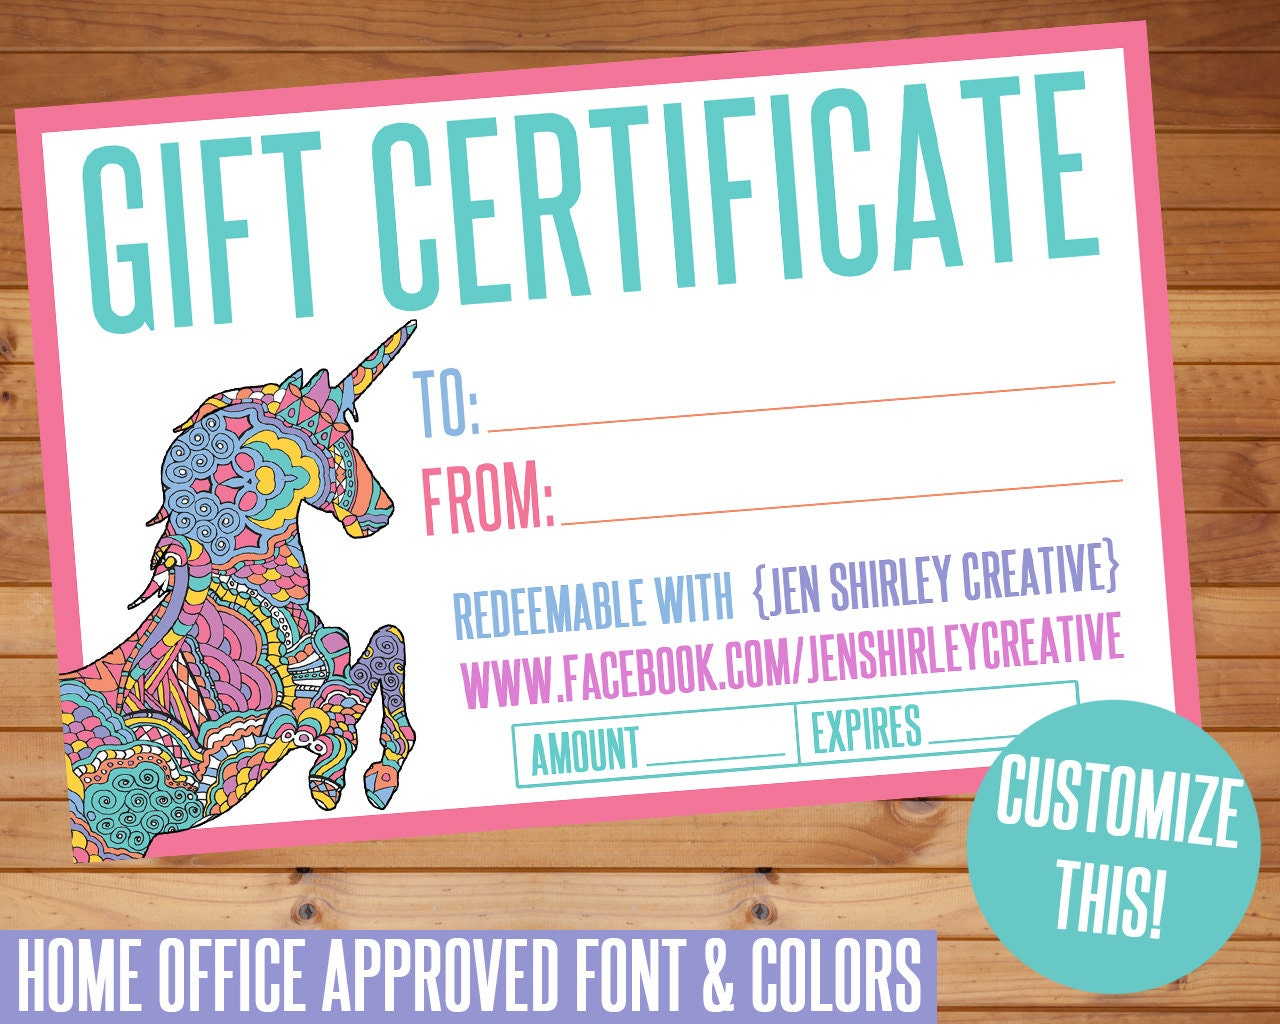 Sale gift certificate digital files ho approved fonts gift zoom magicingreecefo Image collections